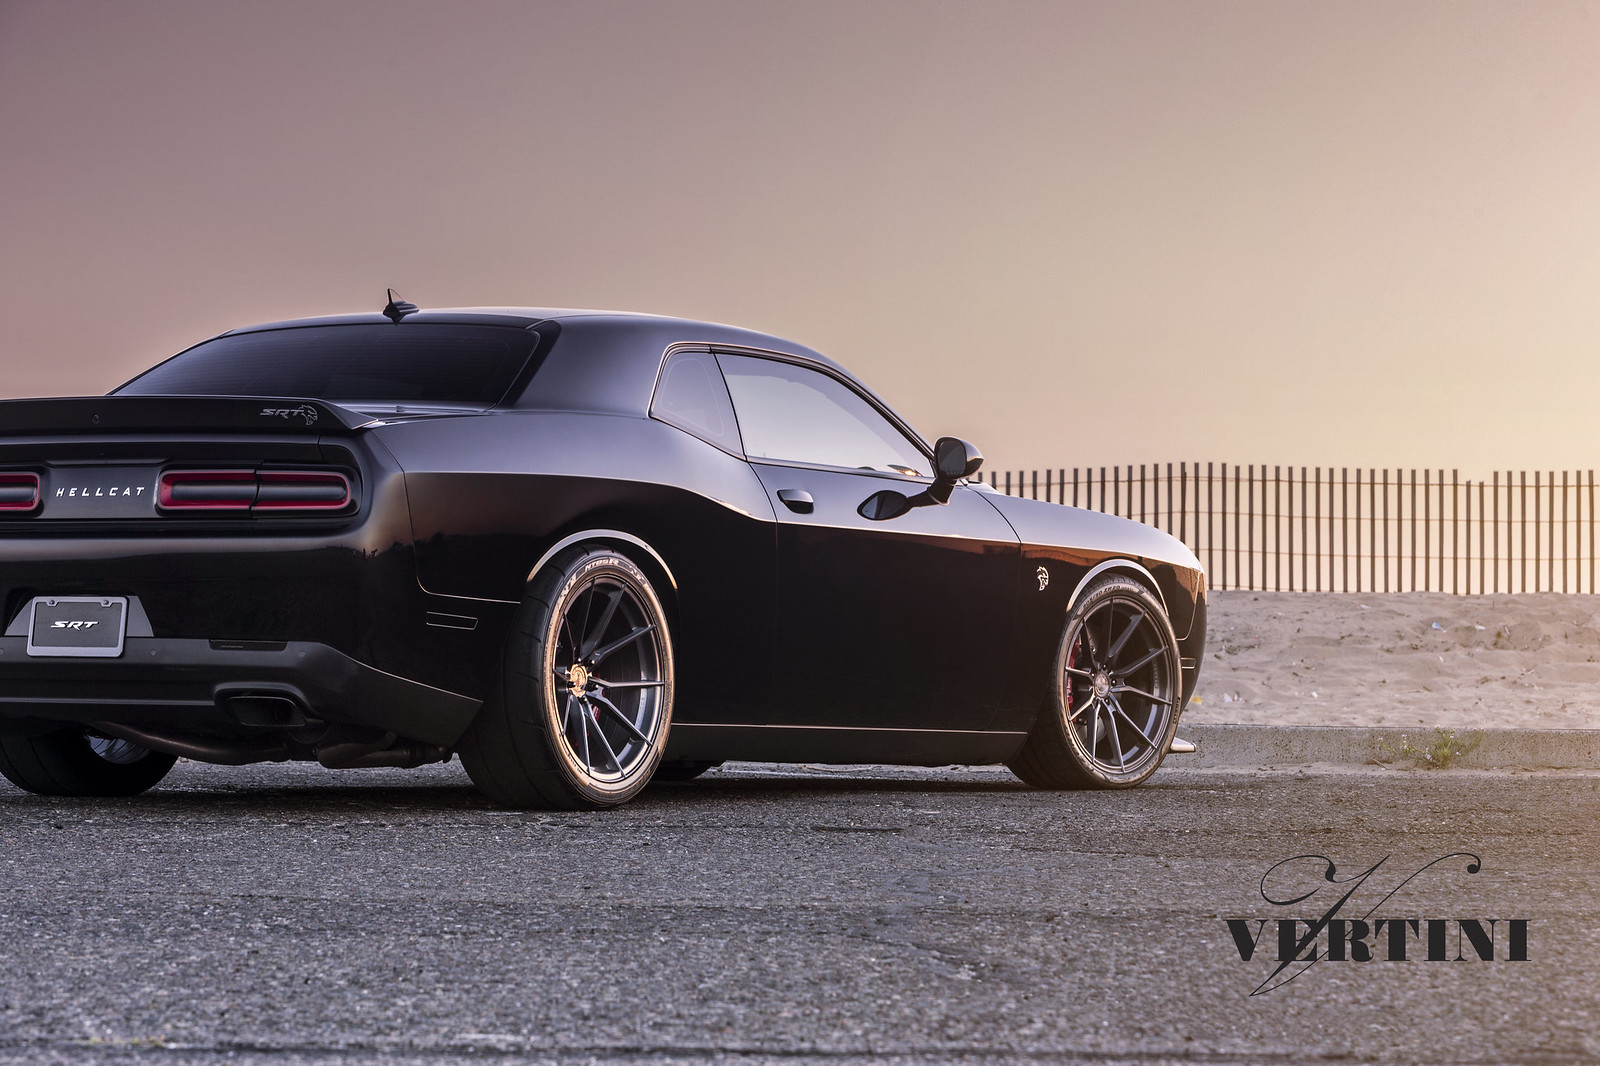 VS Forged & Vertini Light Weight Full Forged Construction Wheels for your Challenger - Dodge ...